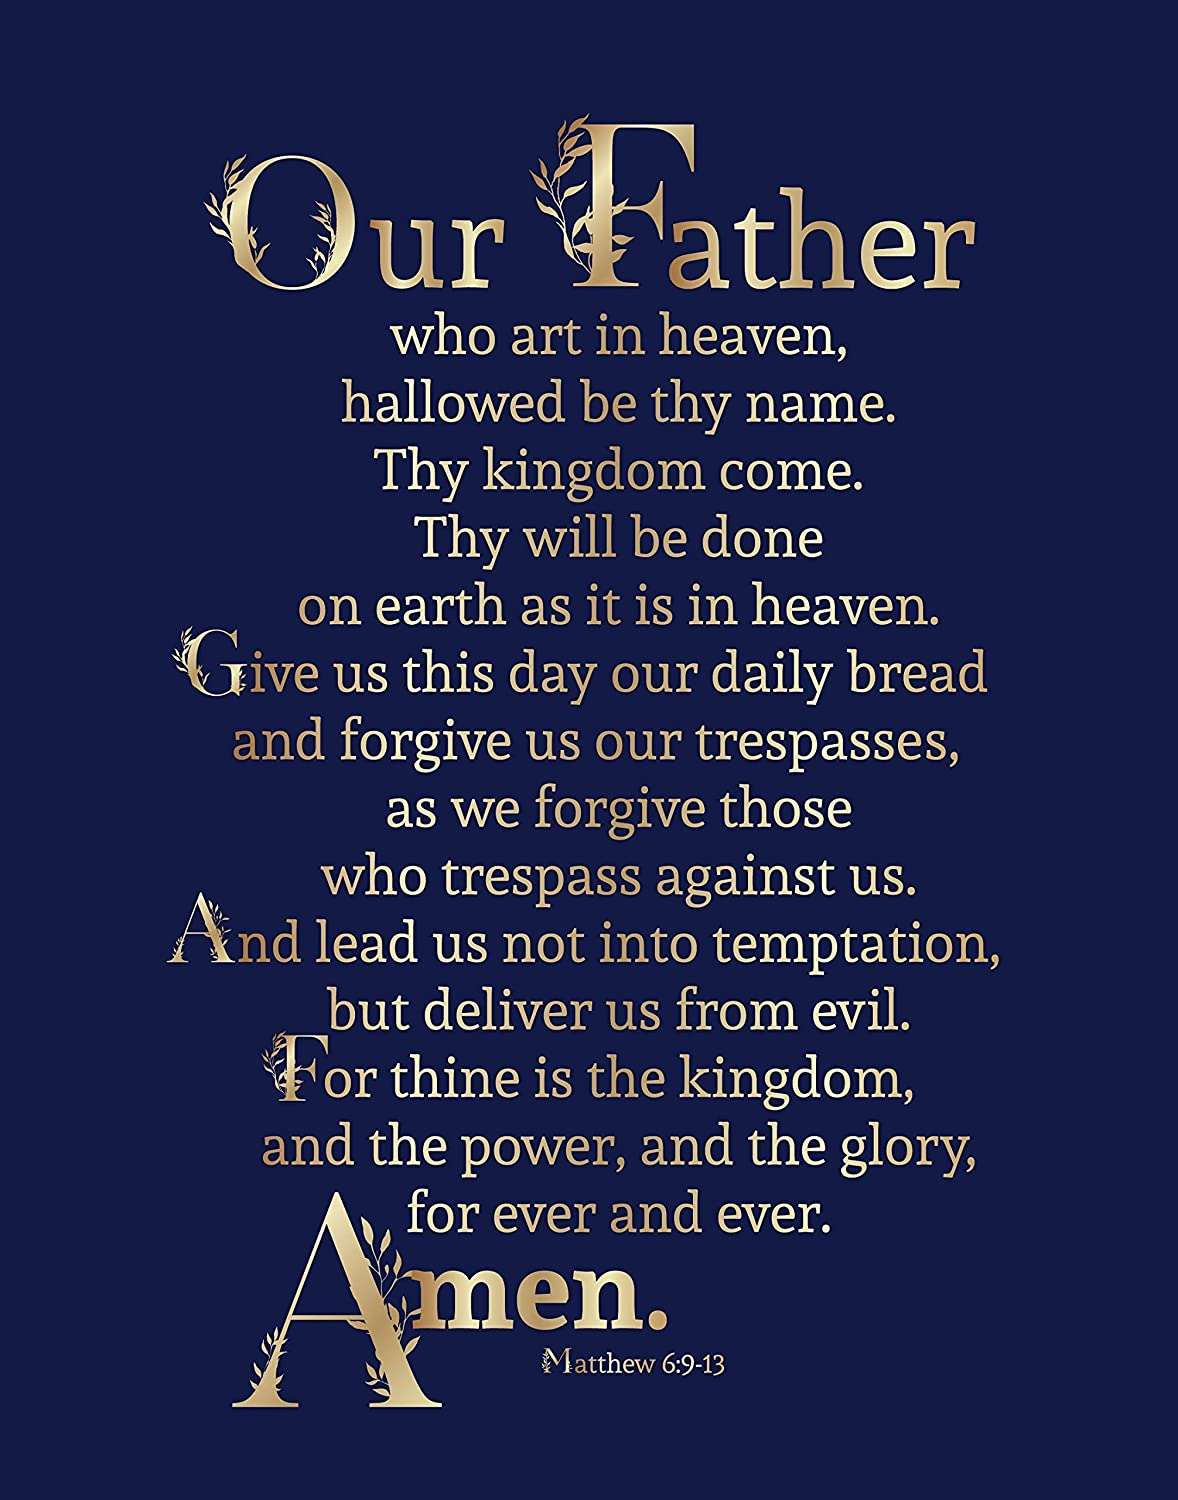 Bible | The Lord's Prayer | Unframed 11 x 14 Print | Perfect Gift under $15.00 | Christian Wall Decor